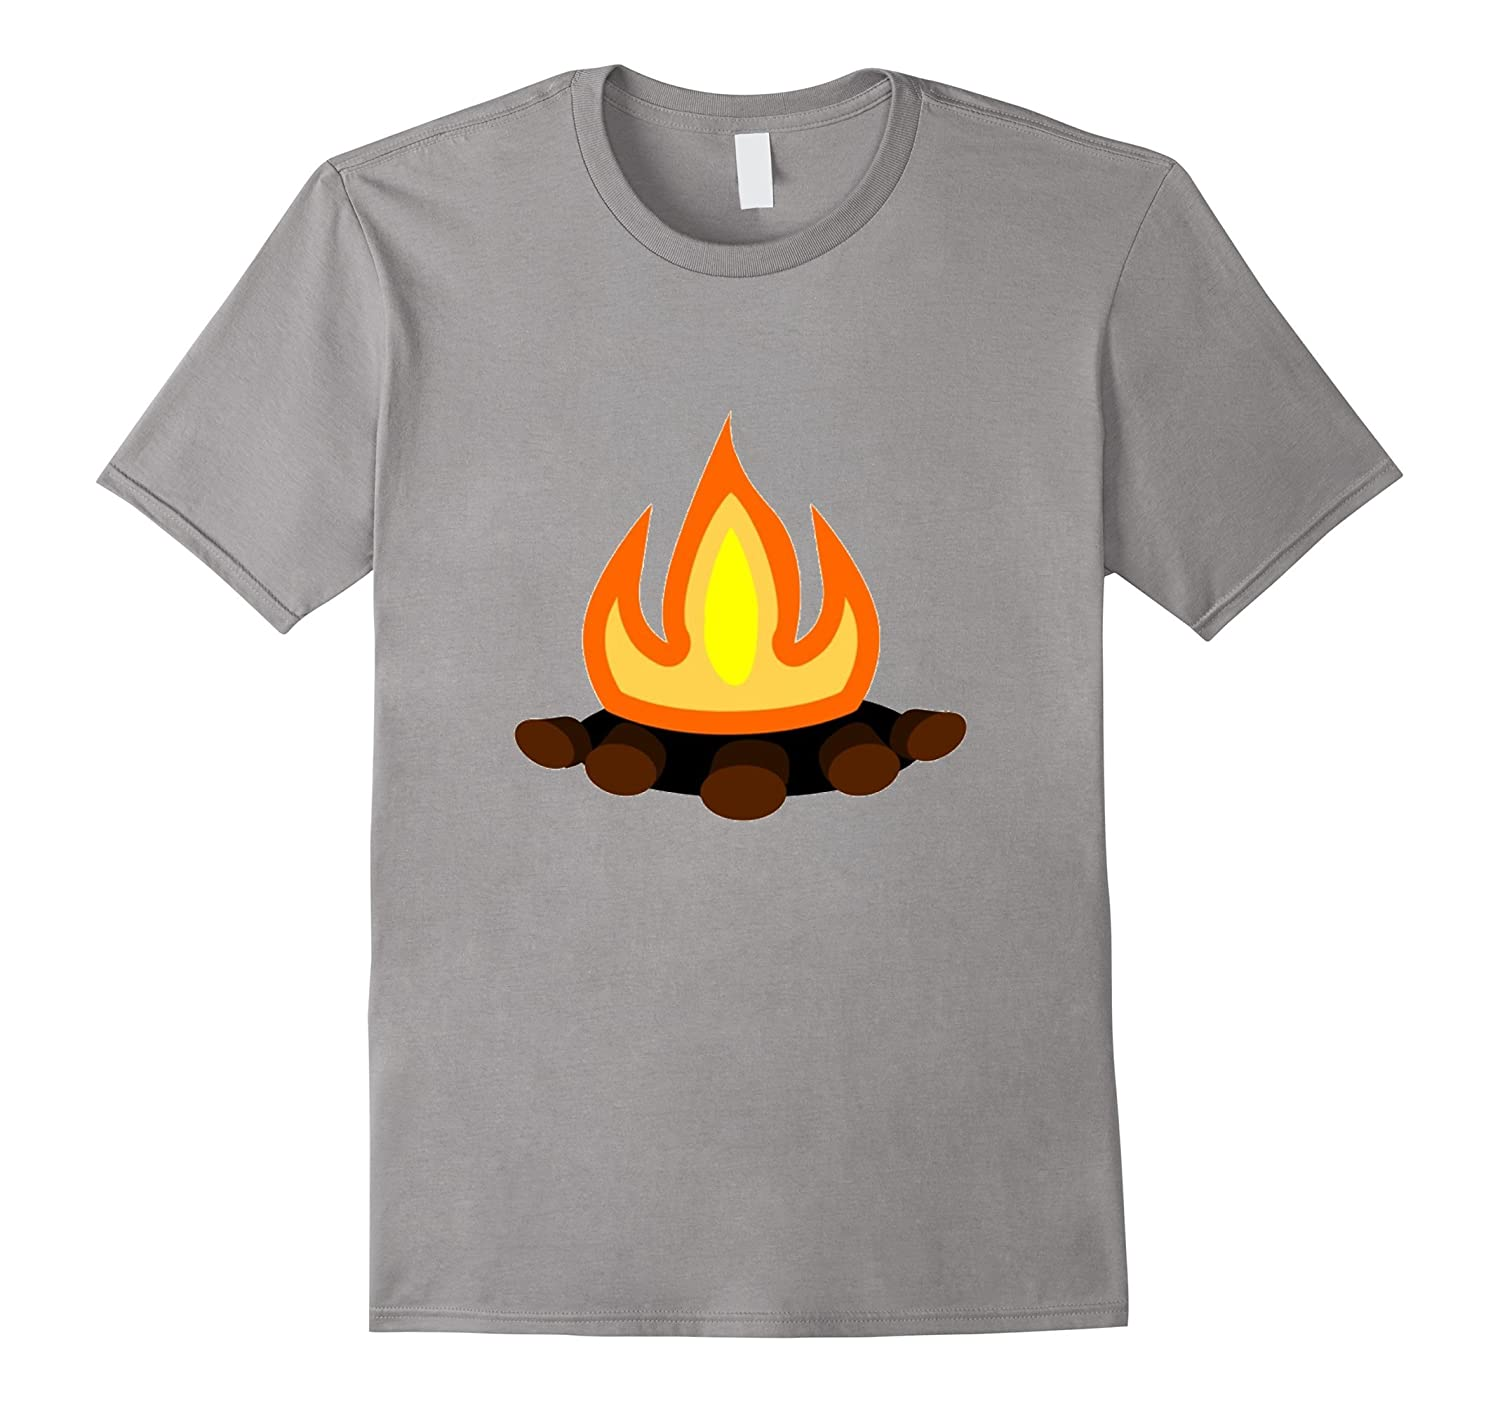 Campfire Graphic t-shirt Tent Camping Cook Marshmallows-TH